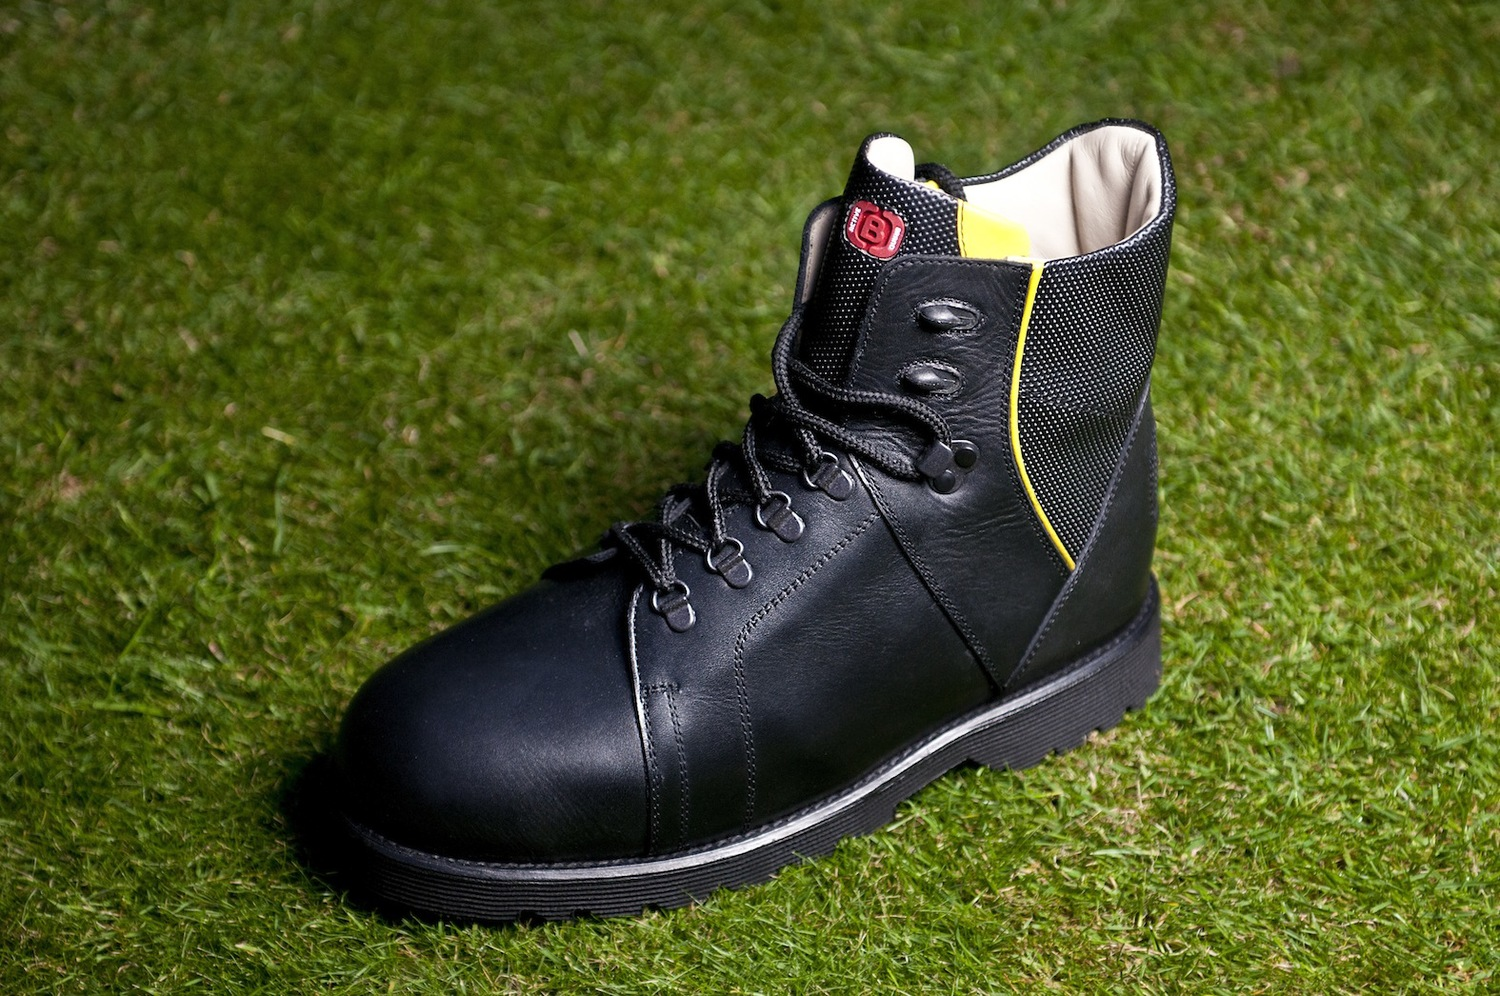 f4287bb6df8 Bespoke Safety Footwear - Bolton Bros